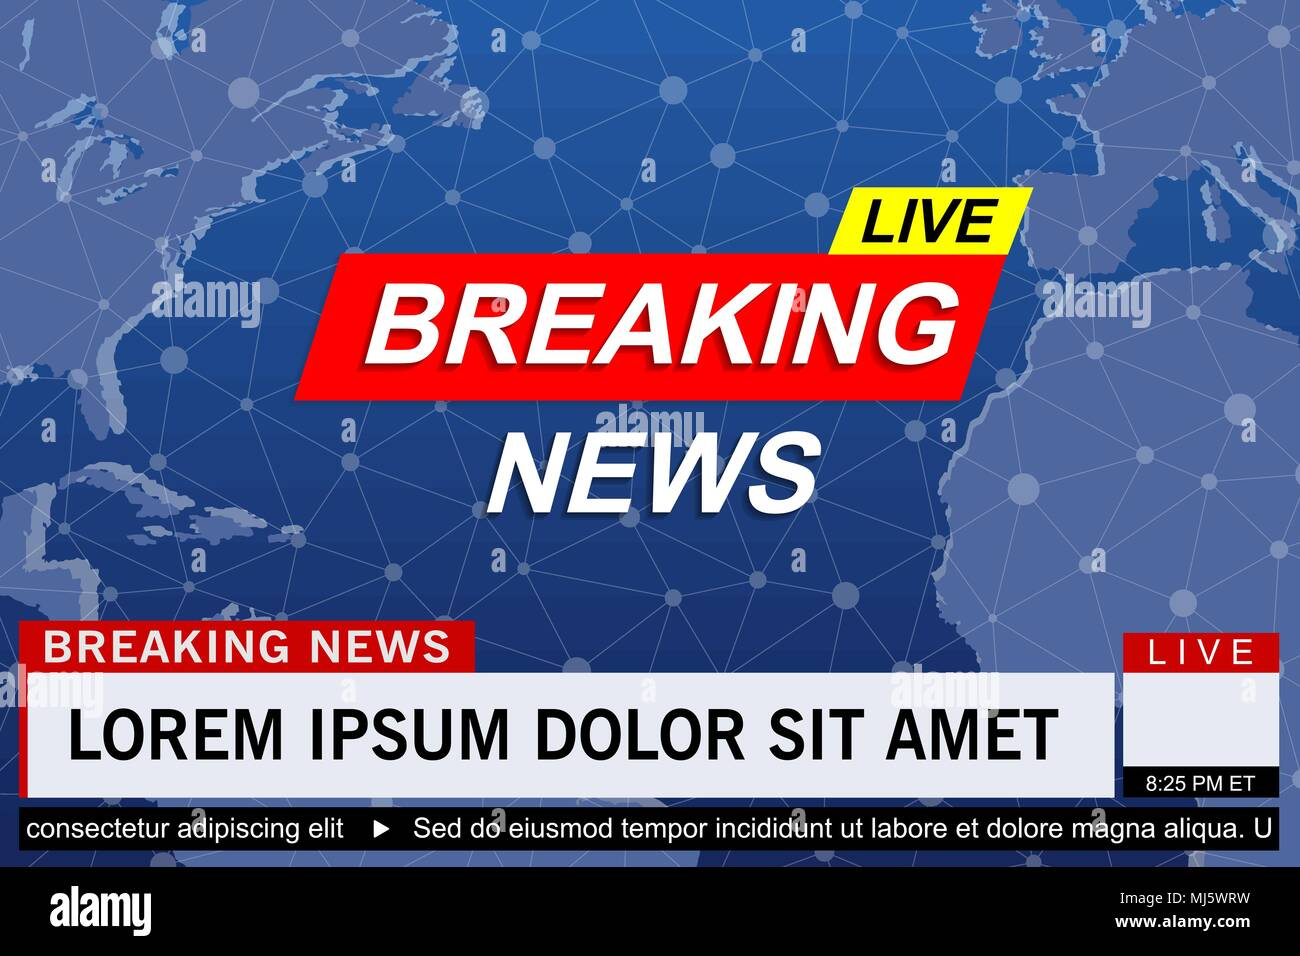 Breaking News Live Template On World Map Background Vector Illustration